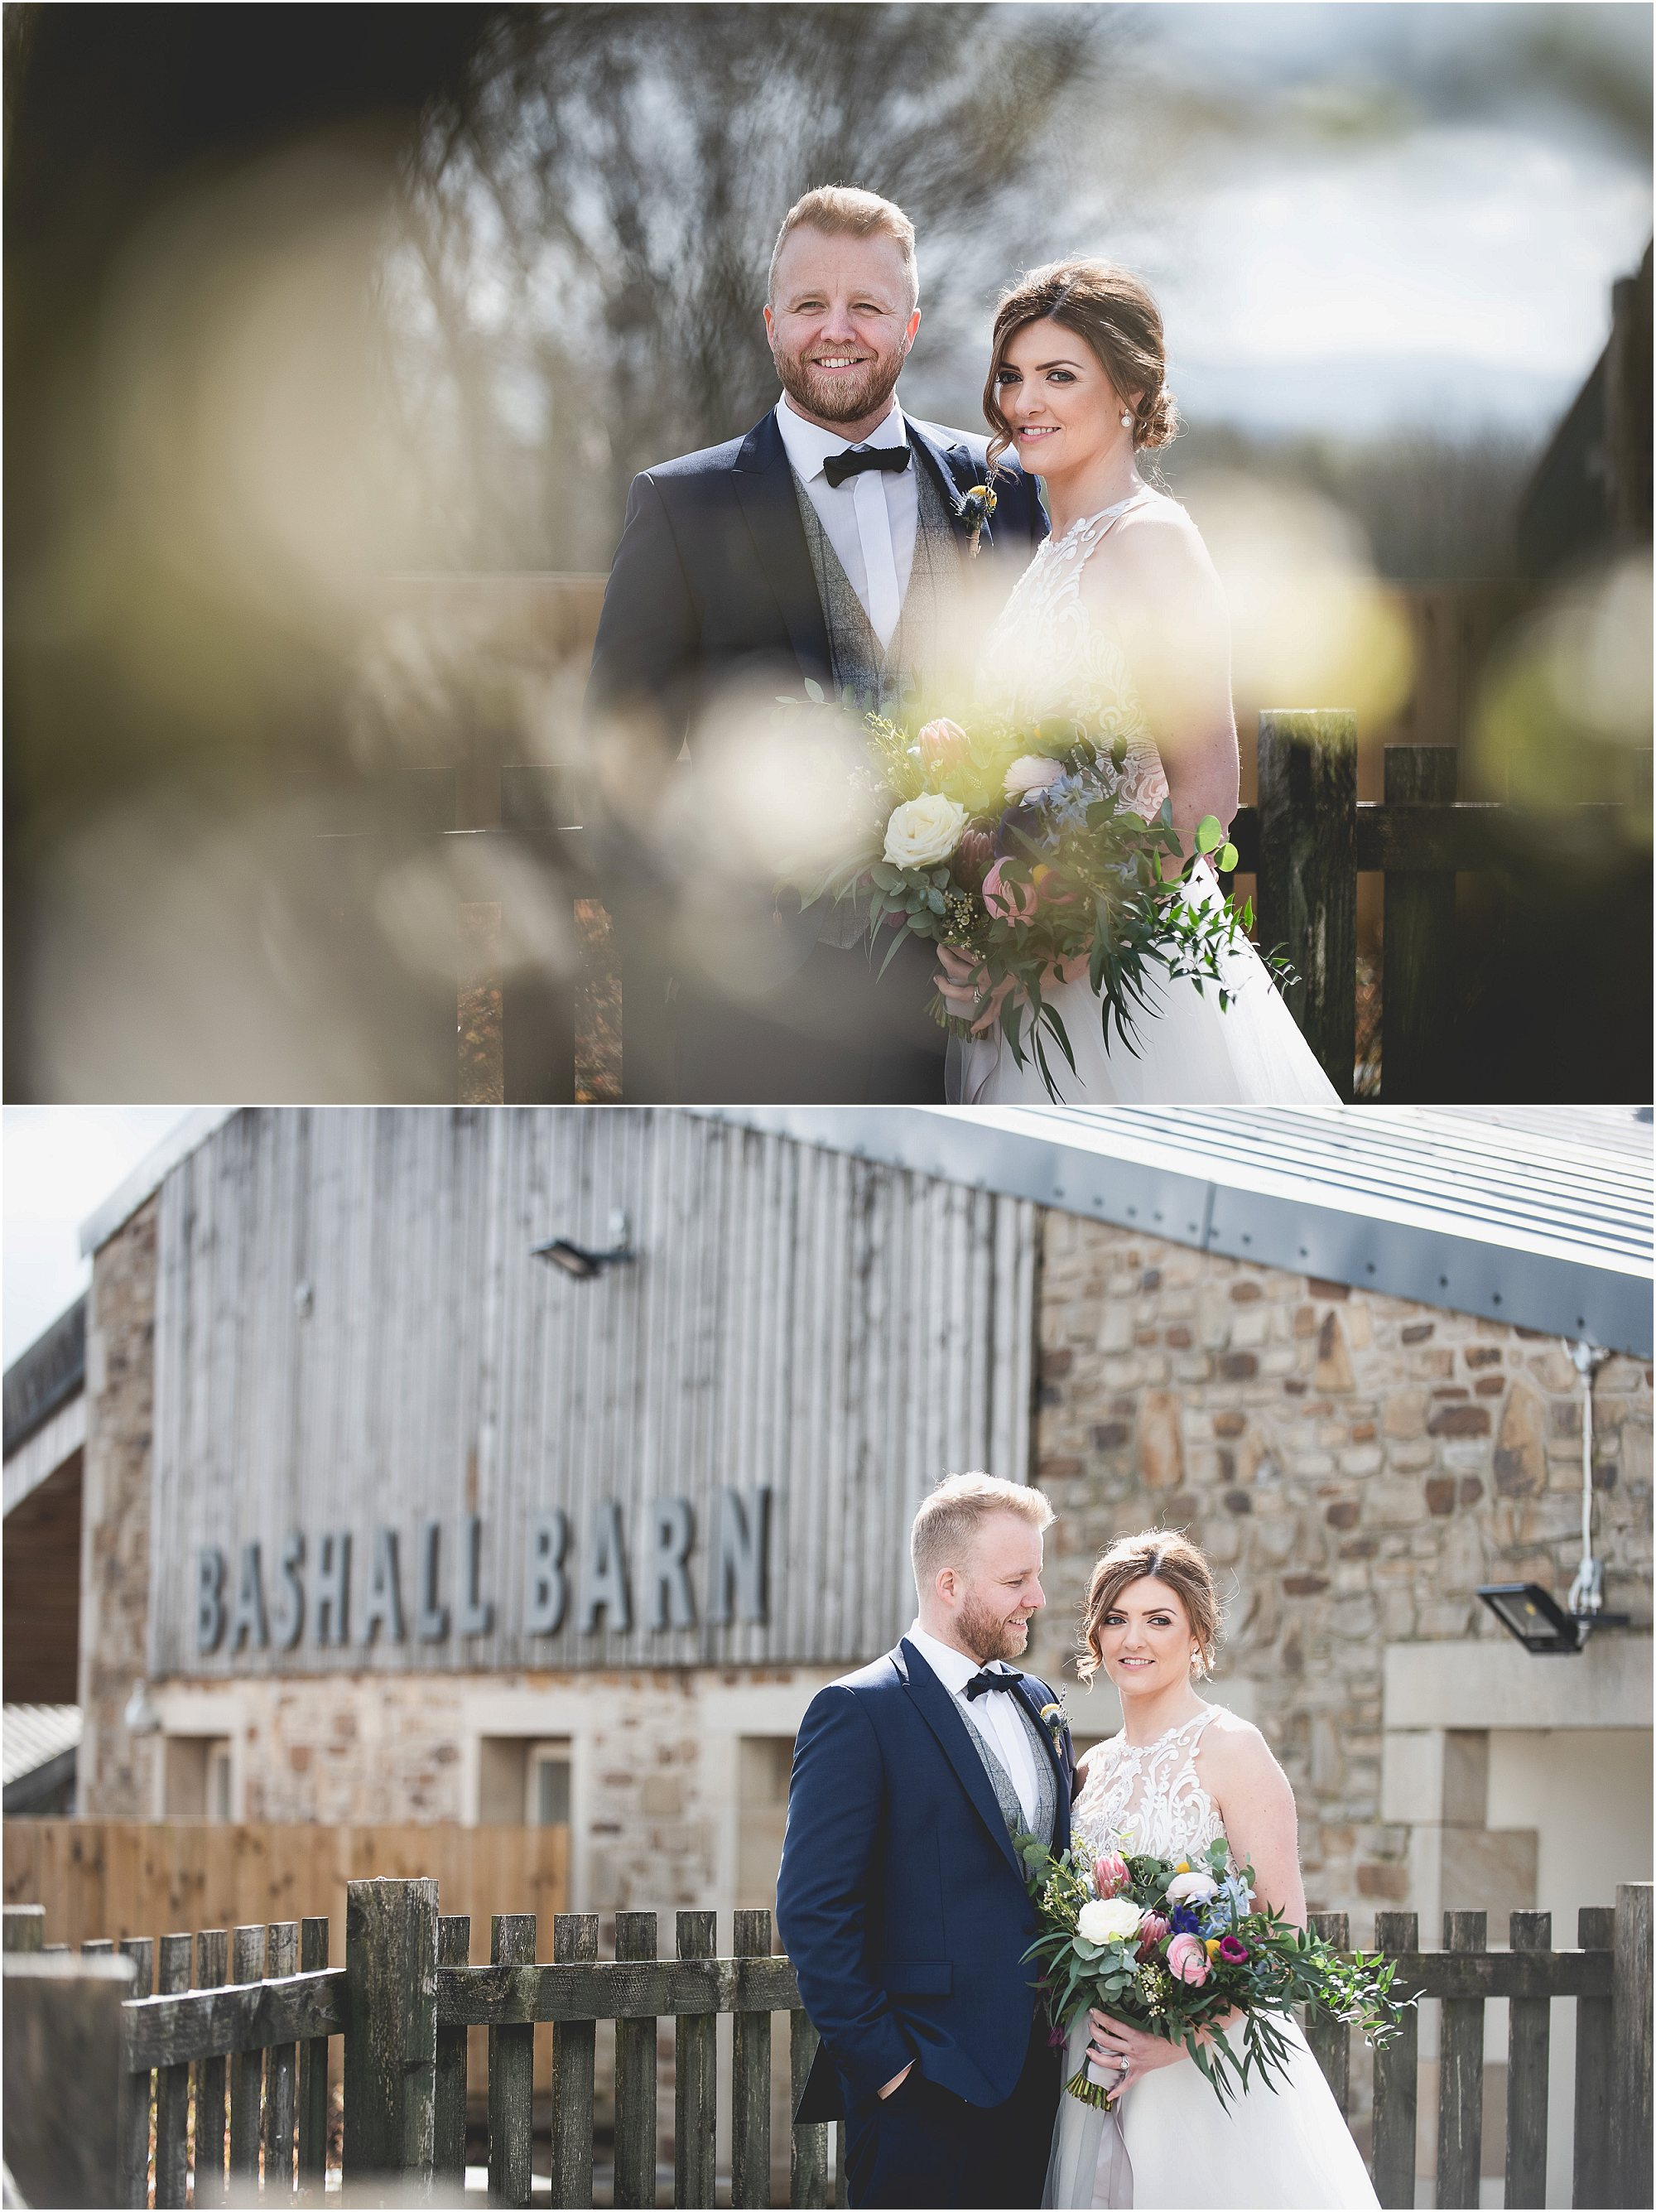 Couple having some Wedding Images taken at Bashall Barn